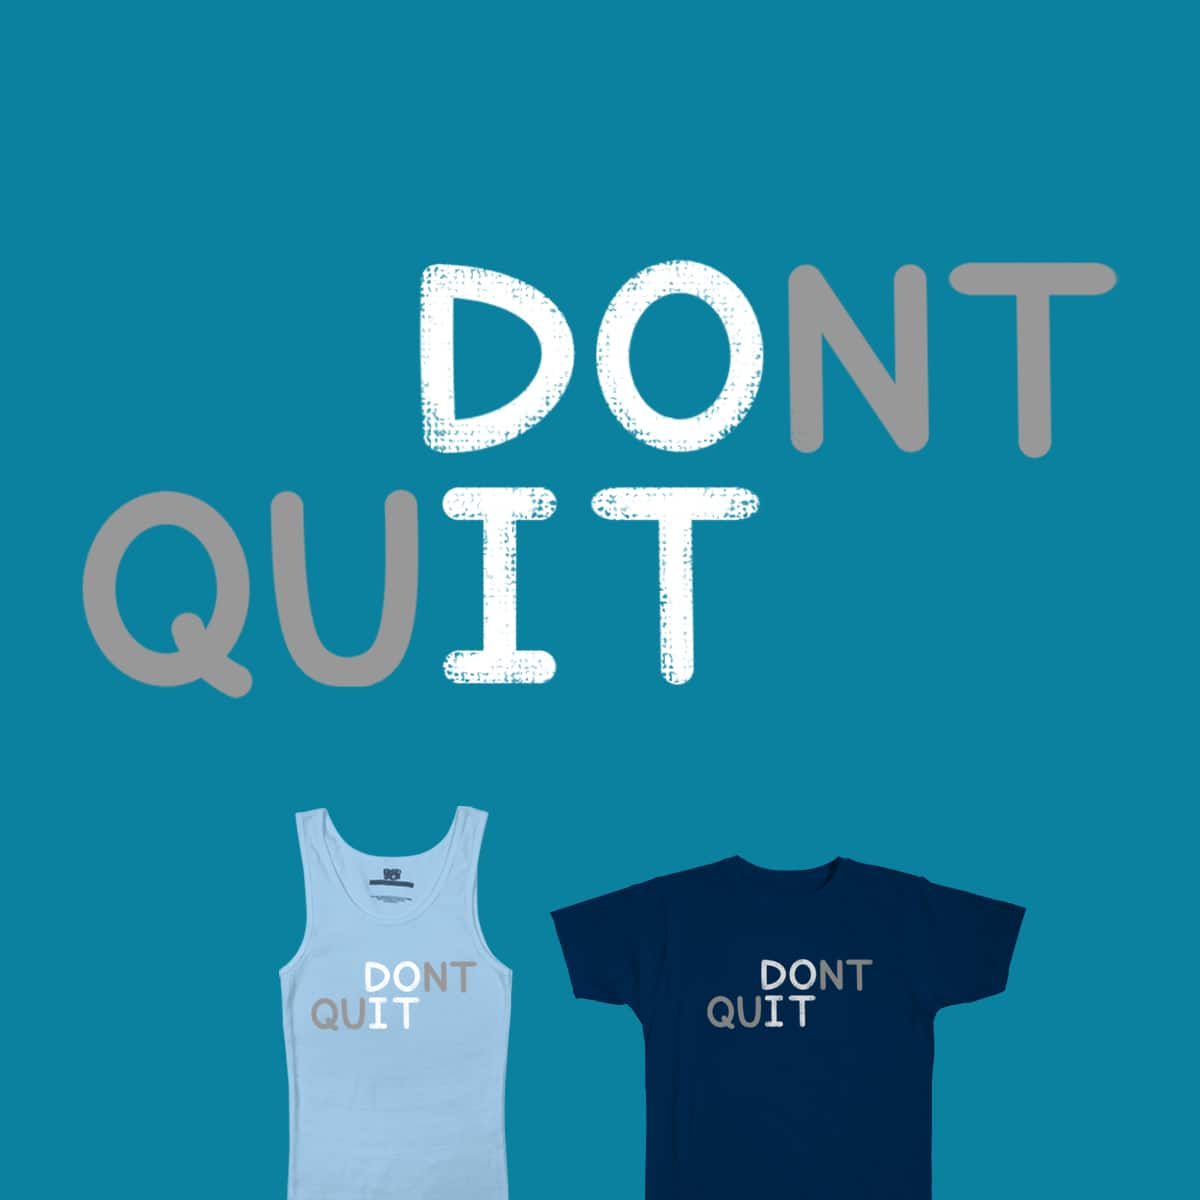 DO IT, DON'T QUIT by farlyfs on Threadless